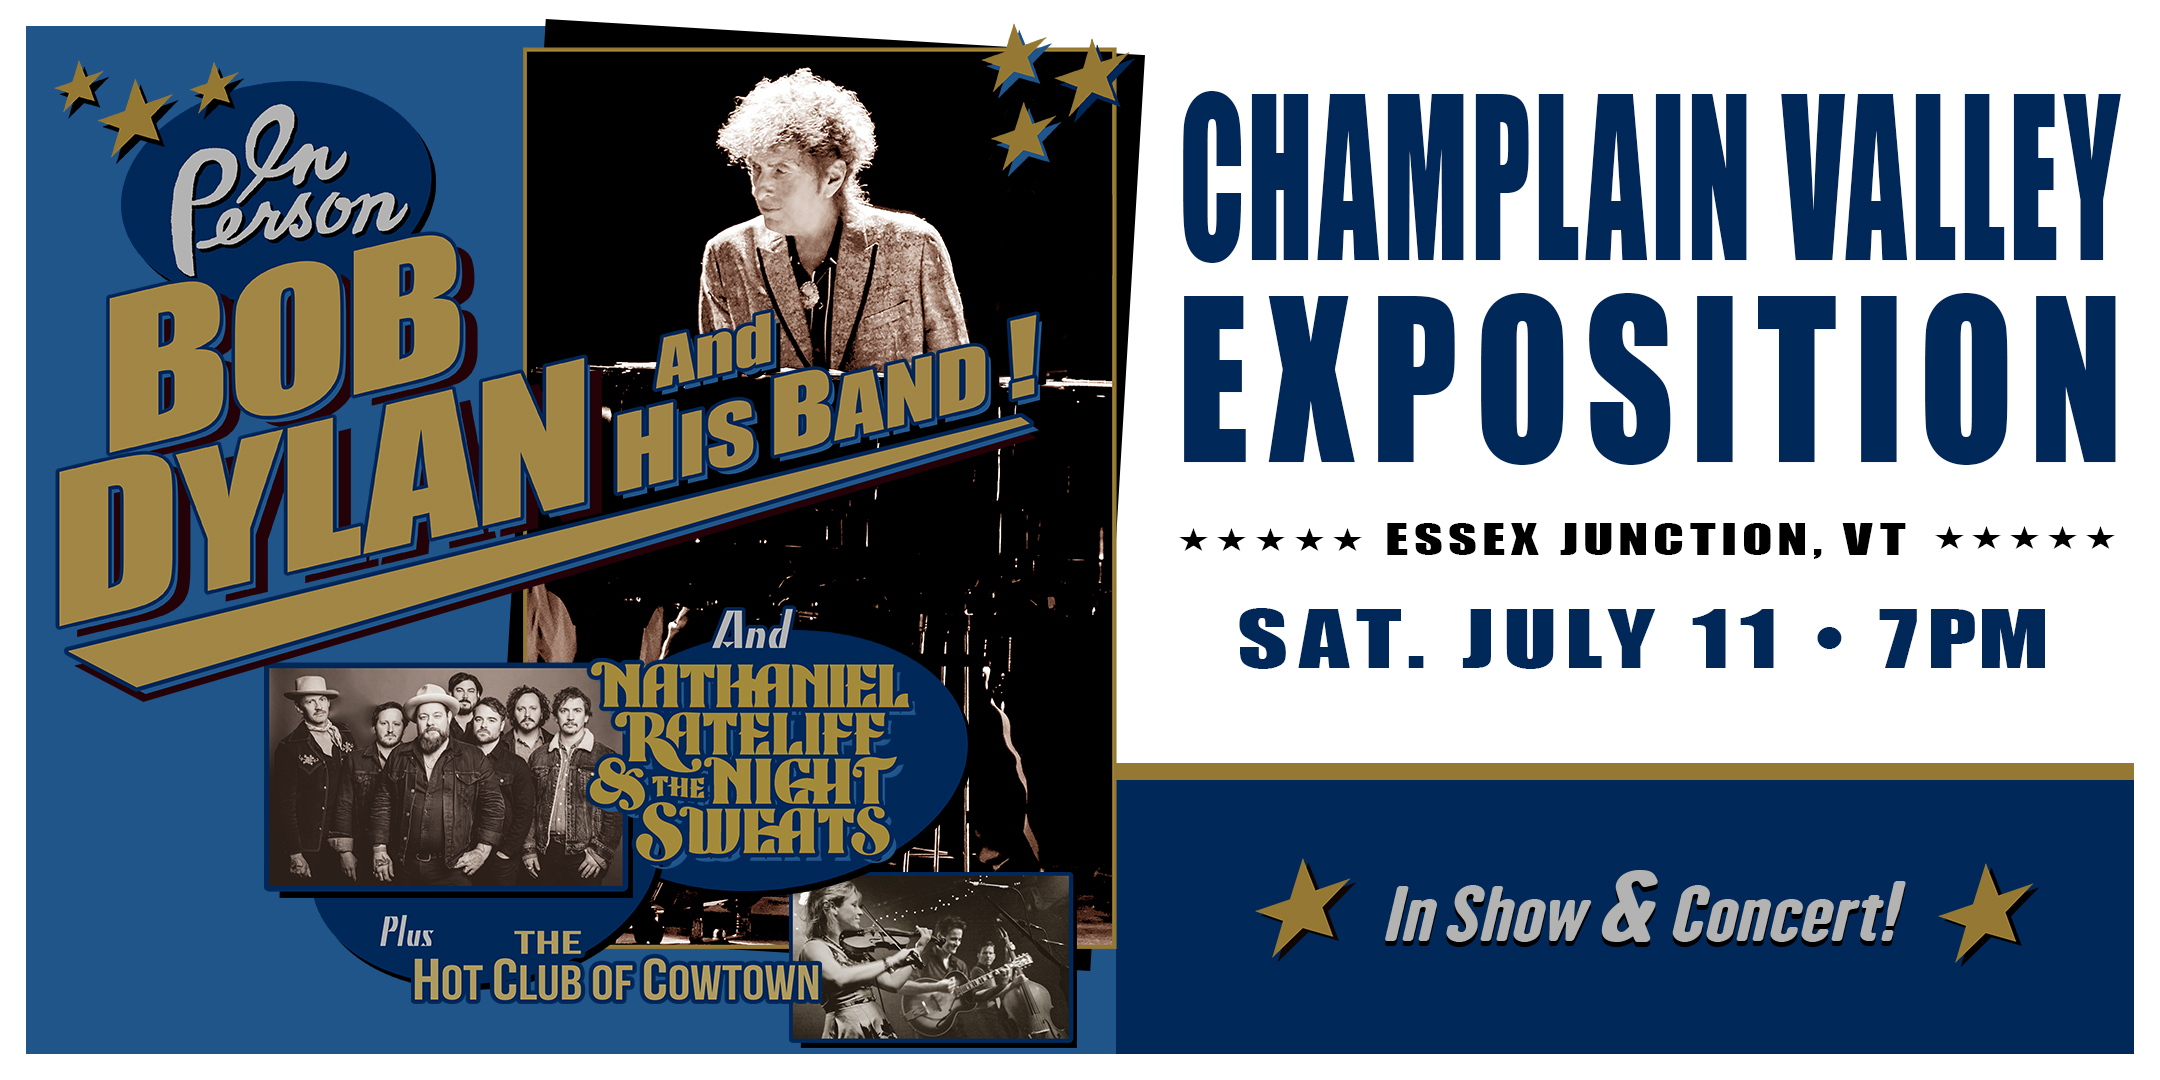 Bob Dylan and His Band 7.11.2020 at the Champlain Valley Expo